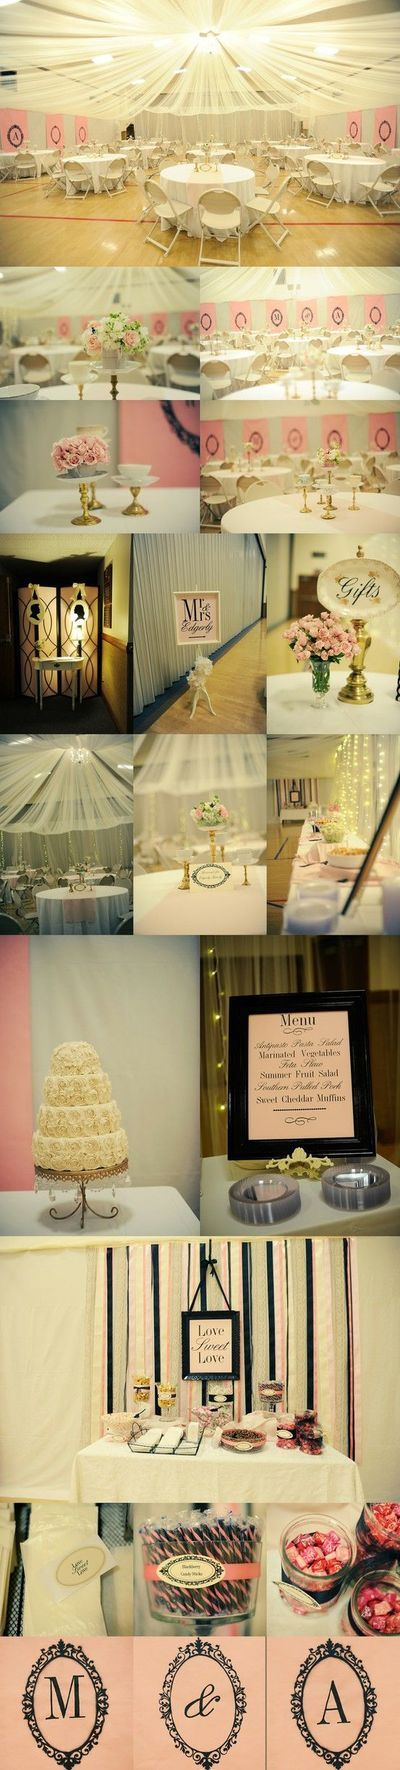 lds cultural hall transformed for a wedding reception - such... / wedding ideas - Juxtapost